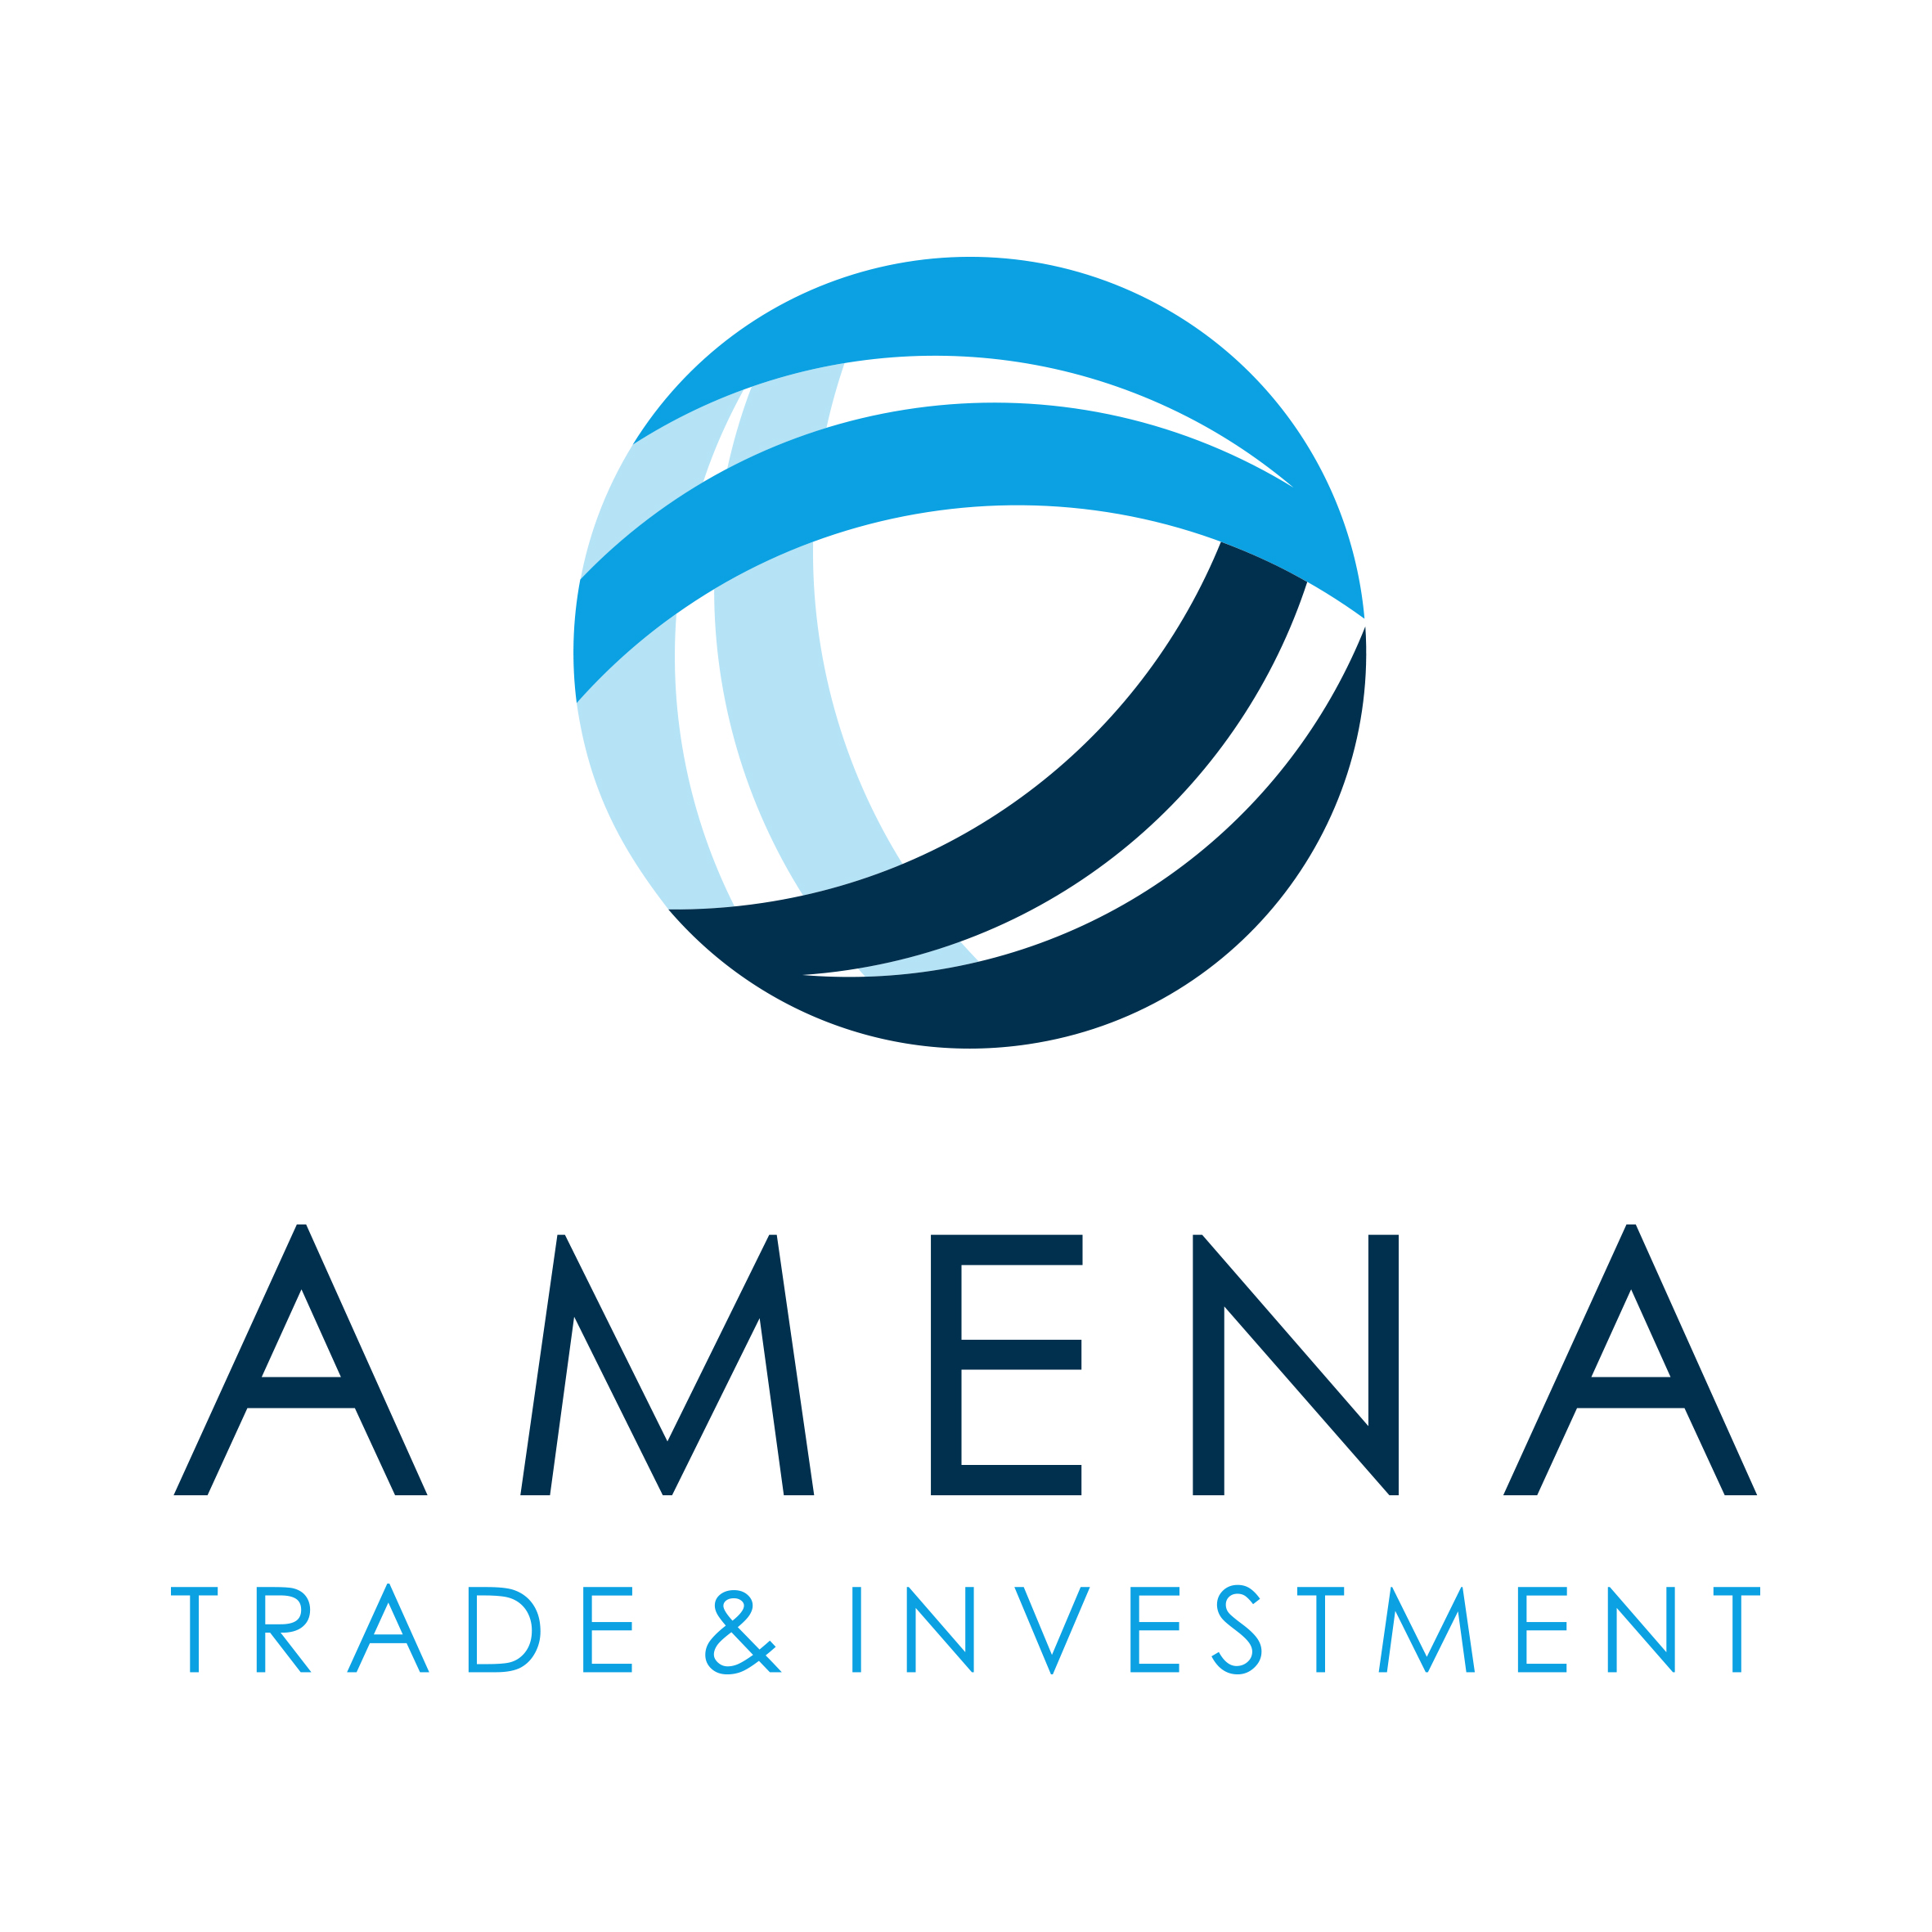 Logo AMENA Trade & Investment